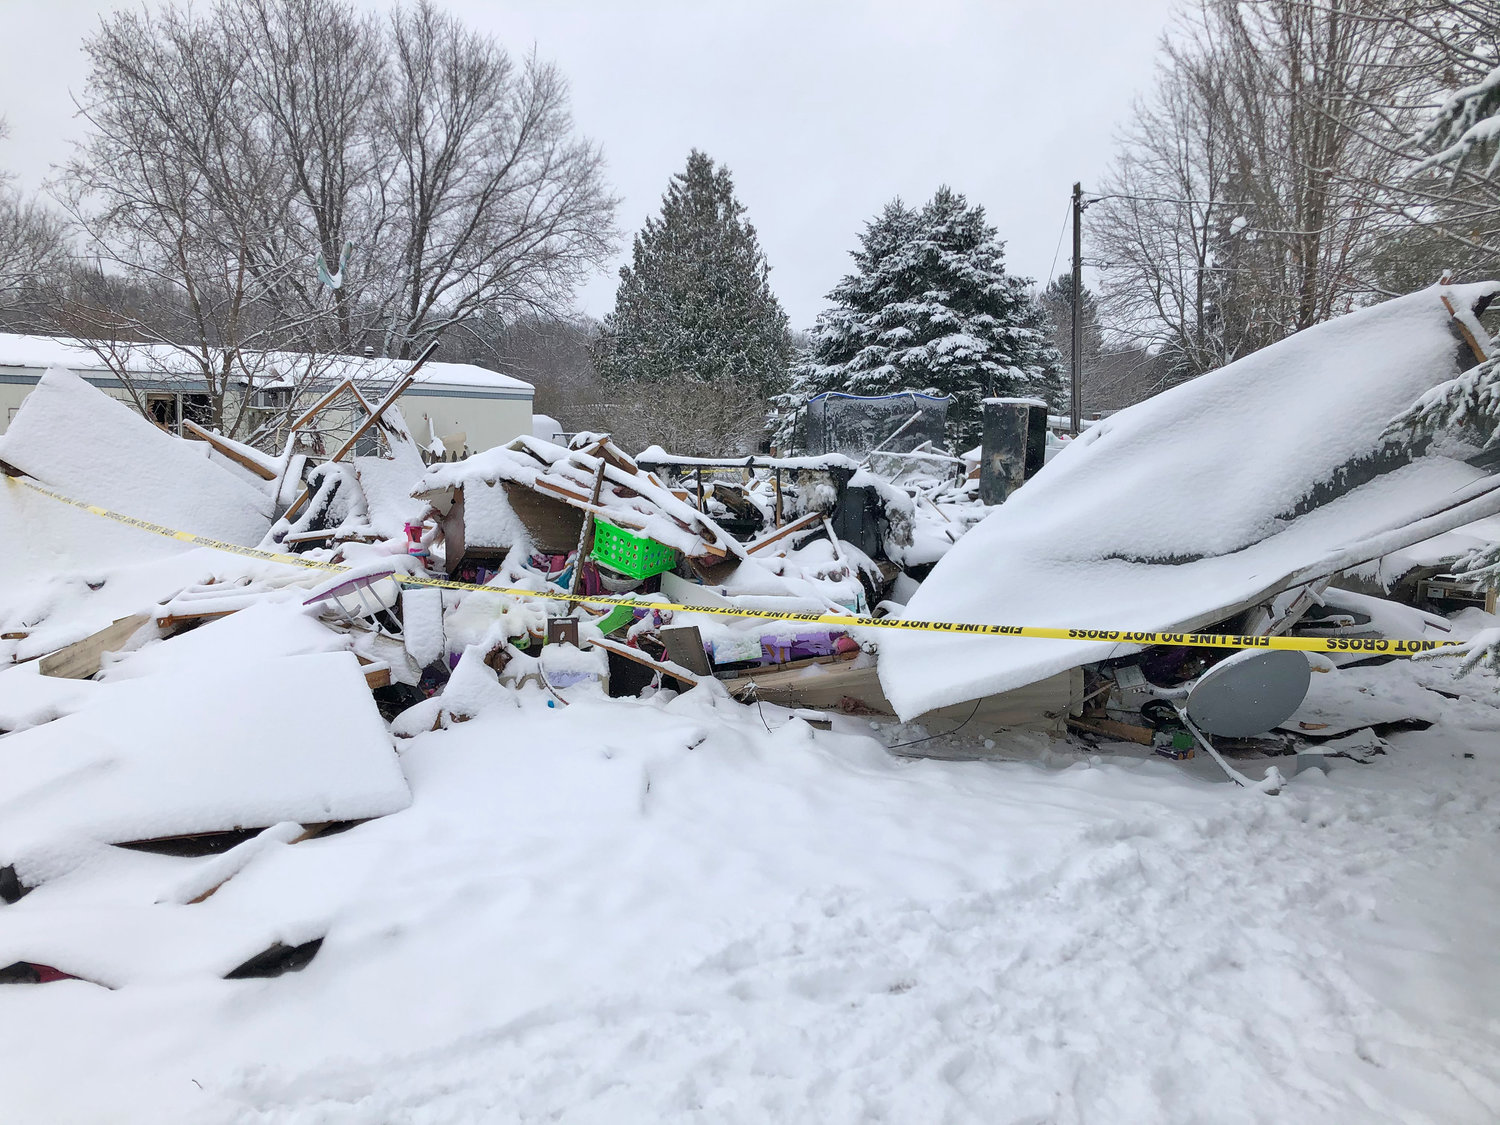 "'LIKE A BOMB WENT OFF' — Freshly fallen snow this morning covers all that remains of a mobile home caught in a propane explosion at the Quiet Valley Trailer Park in Vernon Sunday night. Fire officials said it was ""like a bomb went off"", with the force of the blast damaging several nearby homes. Three residents — a mother and her two young daughters — remain hospitalized today with burn injuries."